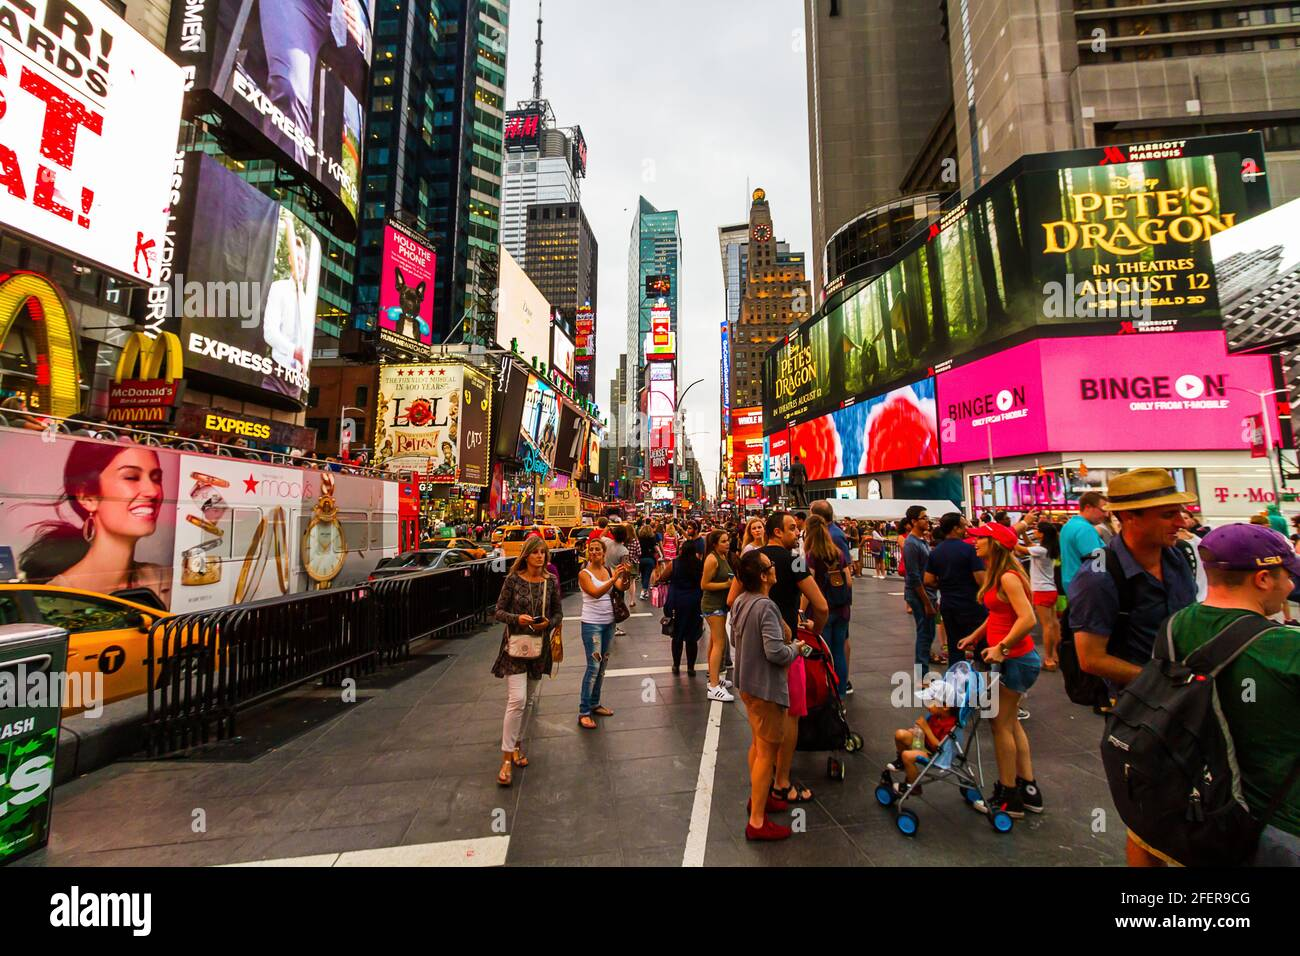 Tourist in summer outfits taking photos at Times Square on a busy evening Stock Photo